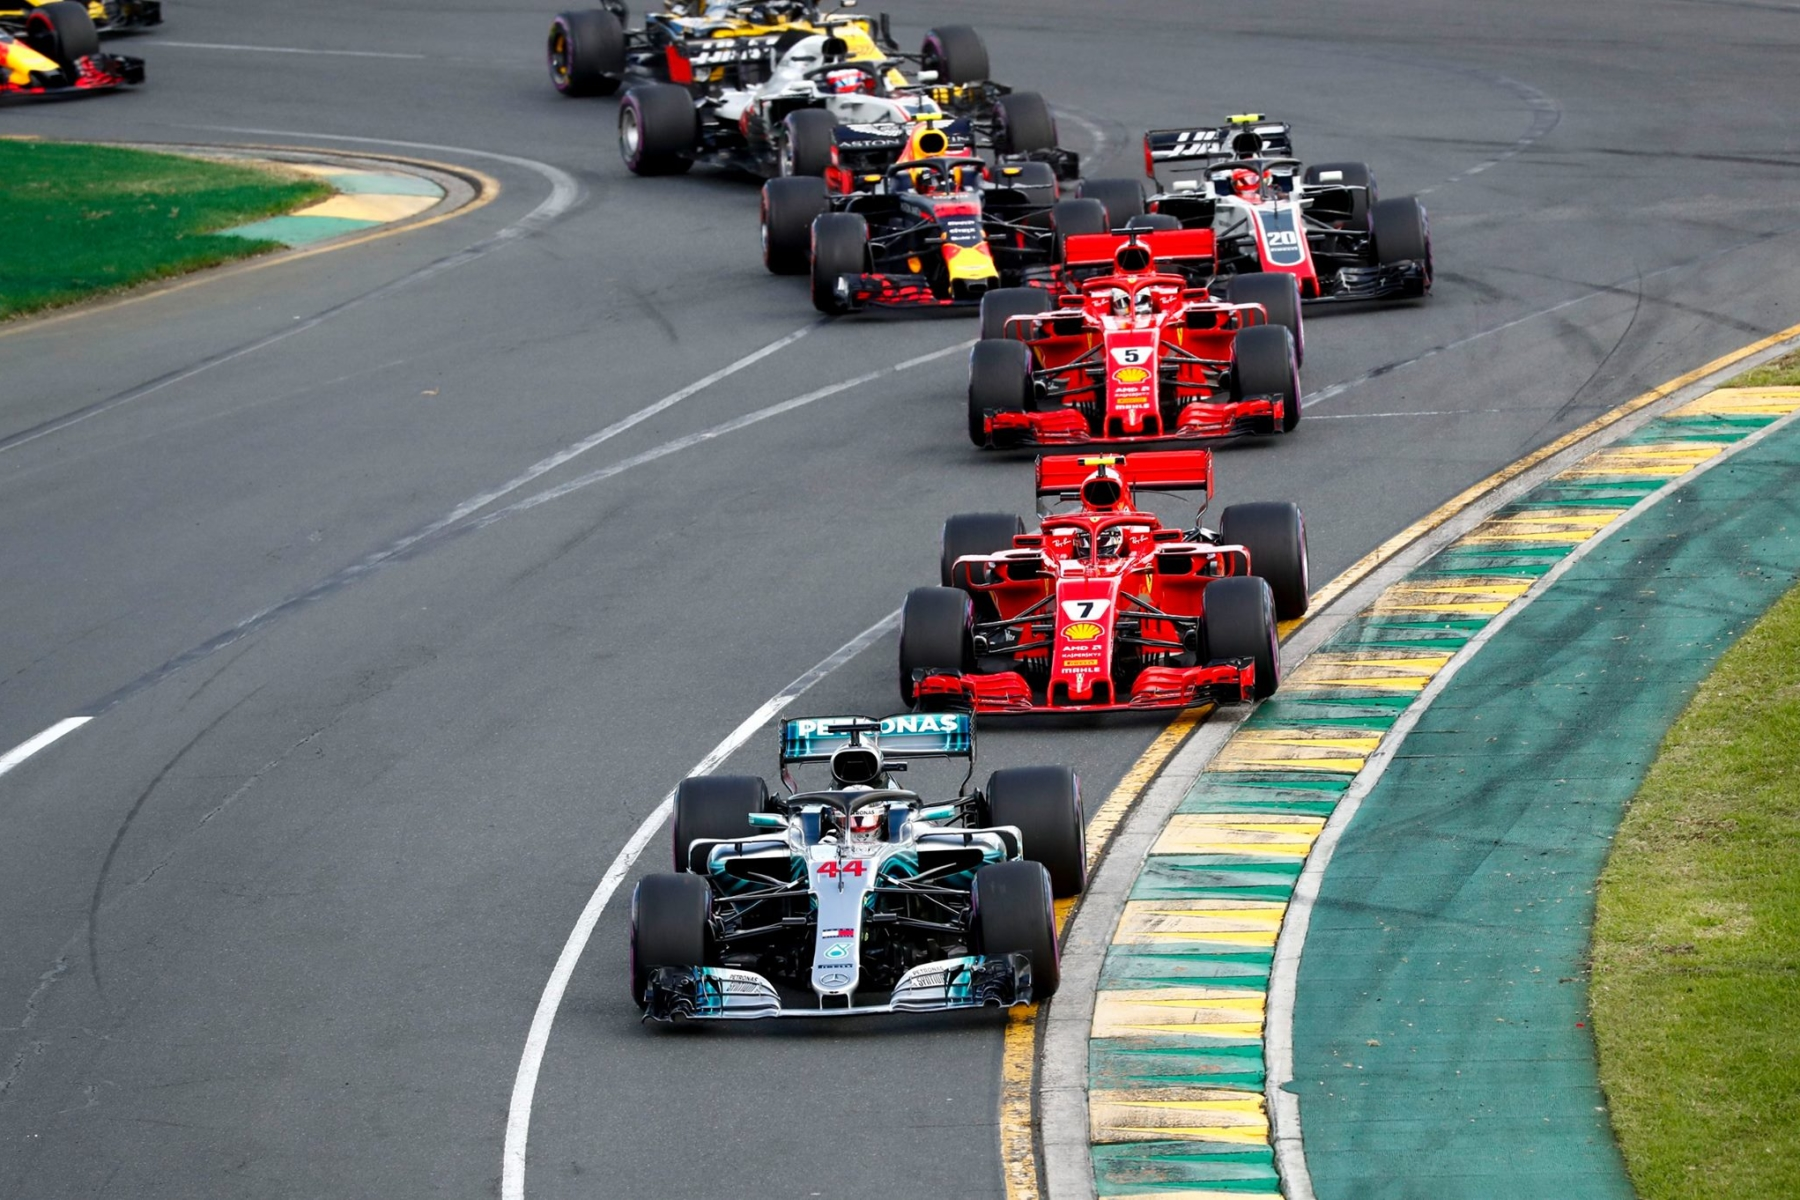 Mercedes leads Ferrari in the Australian Grand Prix